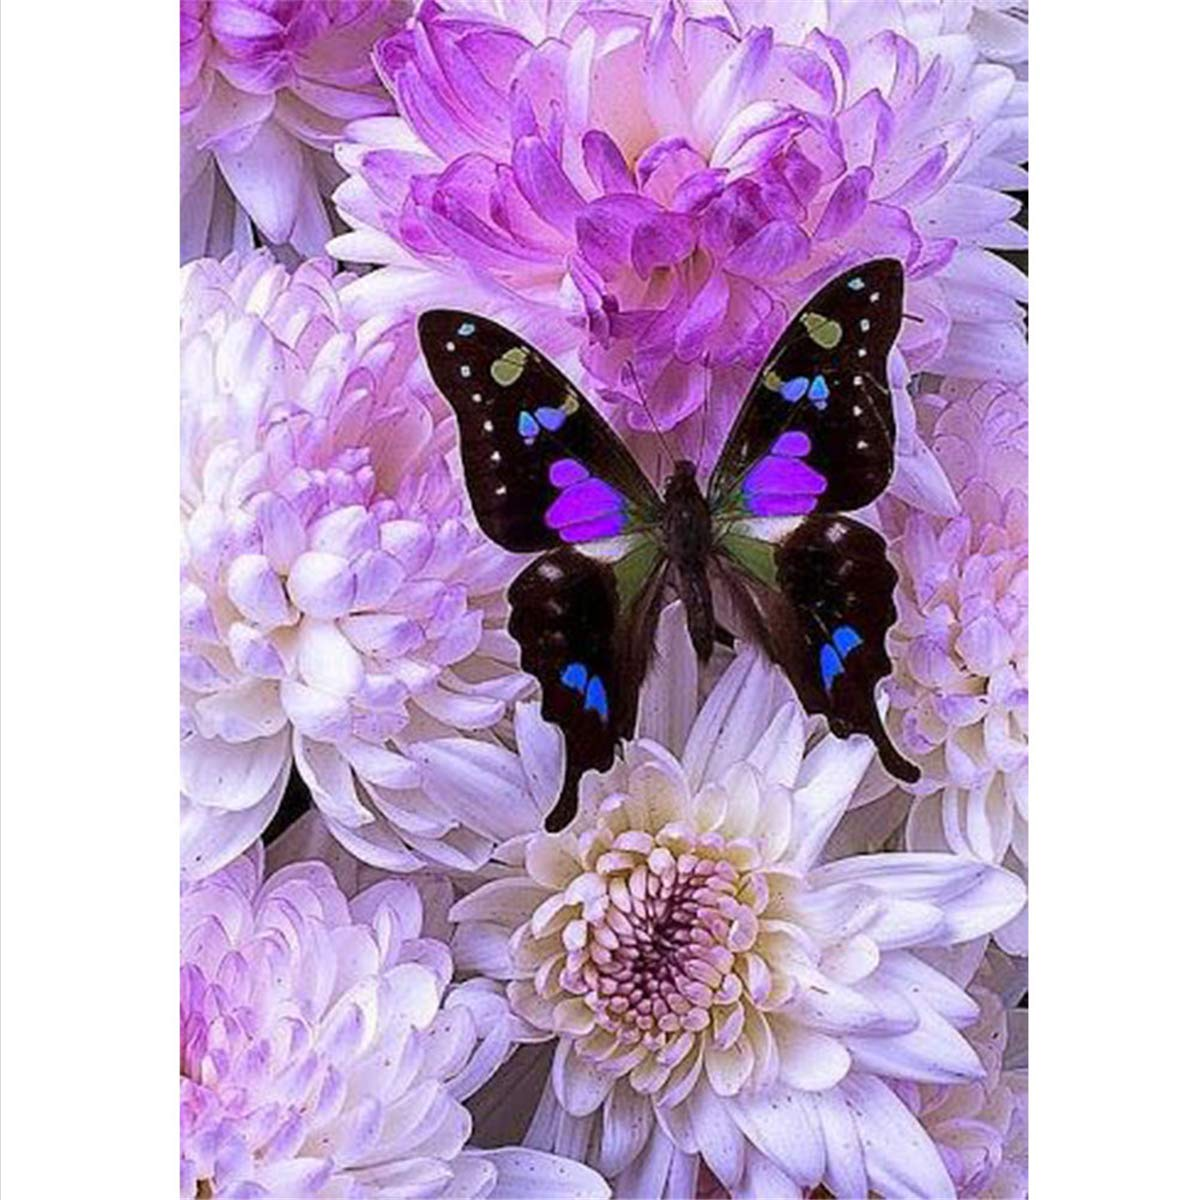 Kissme8 DIY 5D Diamond Painting Kits Full Drill Round Crystal Rhinestone Embroidery Pictures Arts Craft for Home Wall Decor Purple Style Butterfly 30x40cm